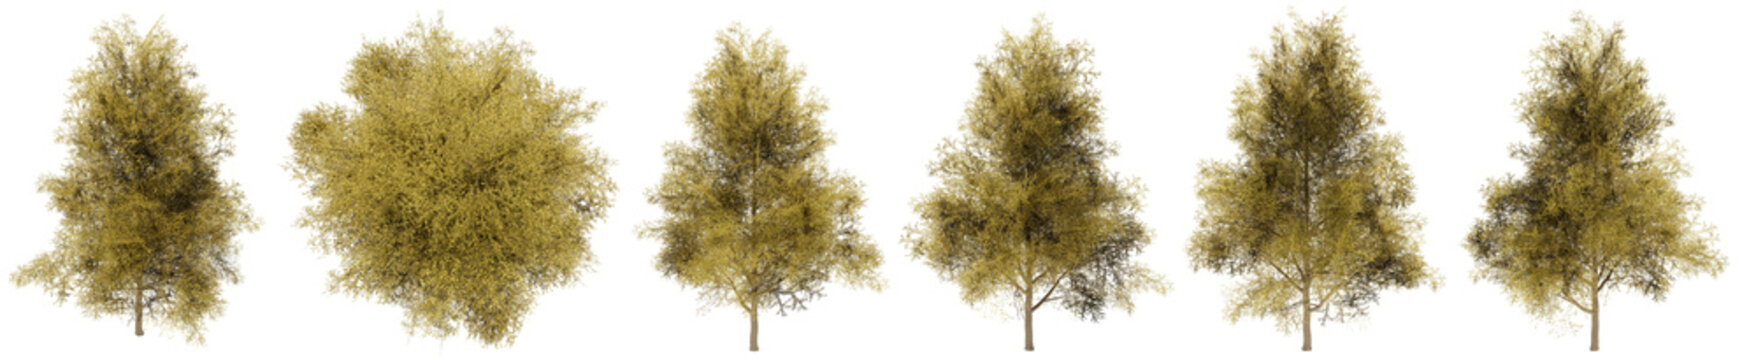 Set or collection of green ginkgo trees isolated on white background. Concept or conceptual 3d illustration for nature, ecology and conservation, strength and endurance, force and life